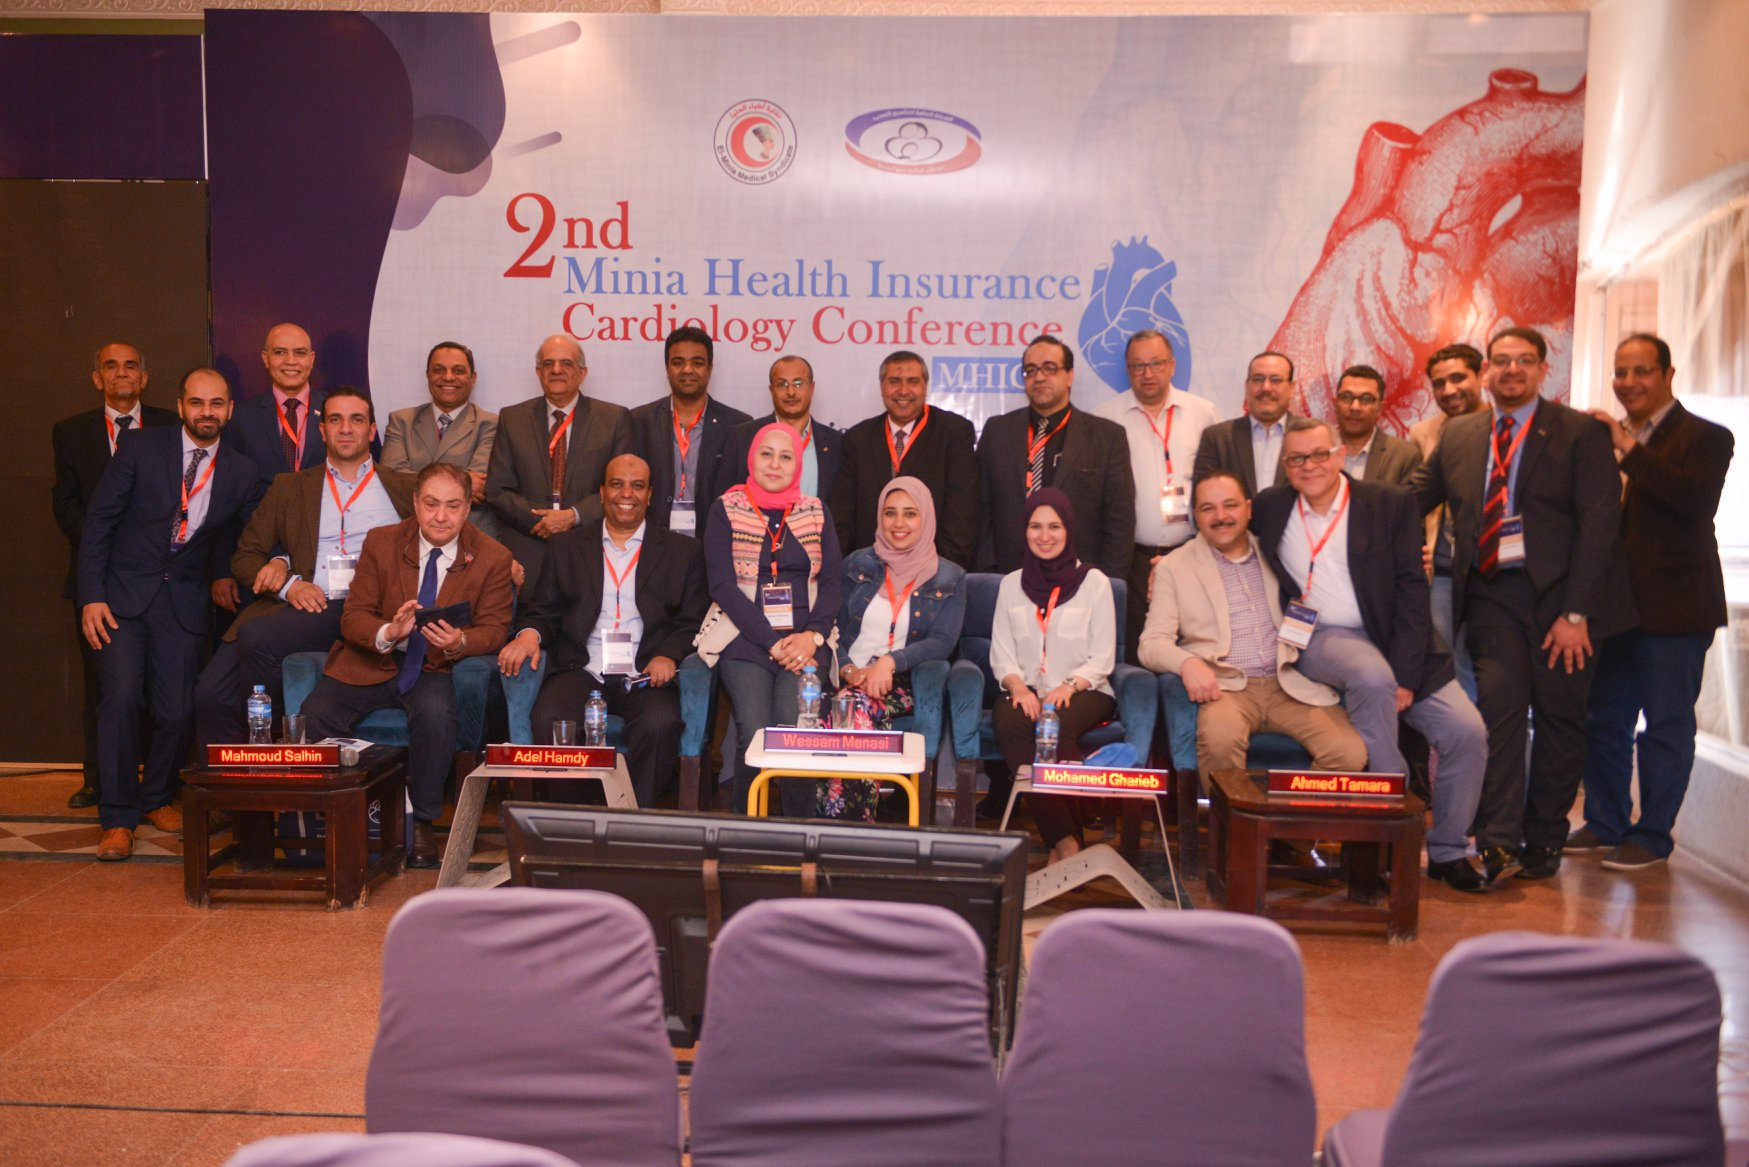 2nd Minia Health Insurance Cardiology Conference